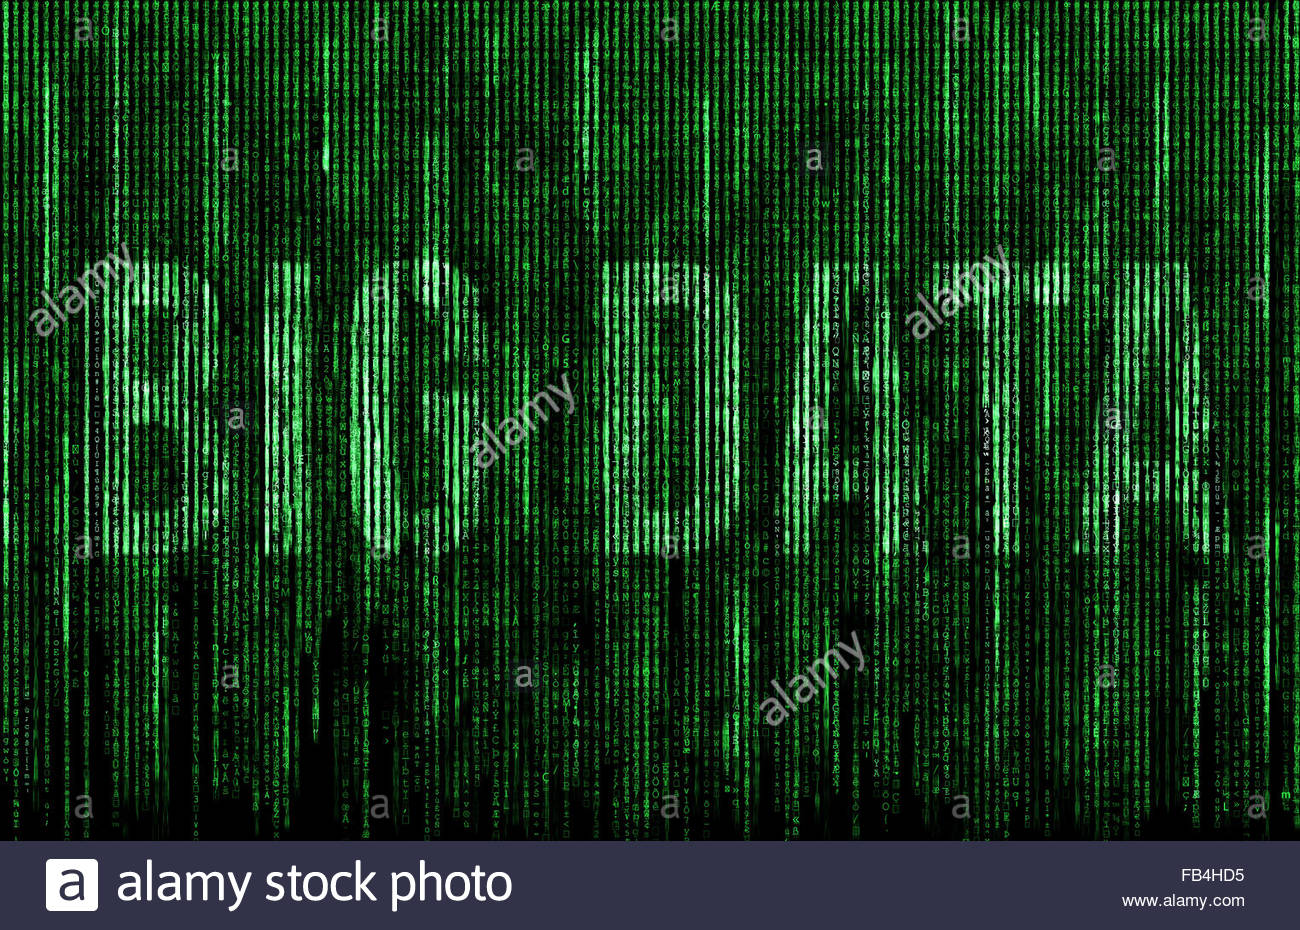 Big Data - matrice numérique Photo Stock